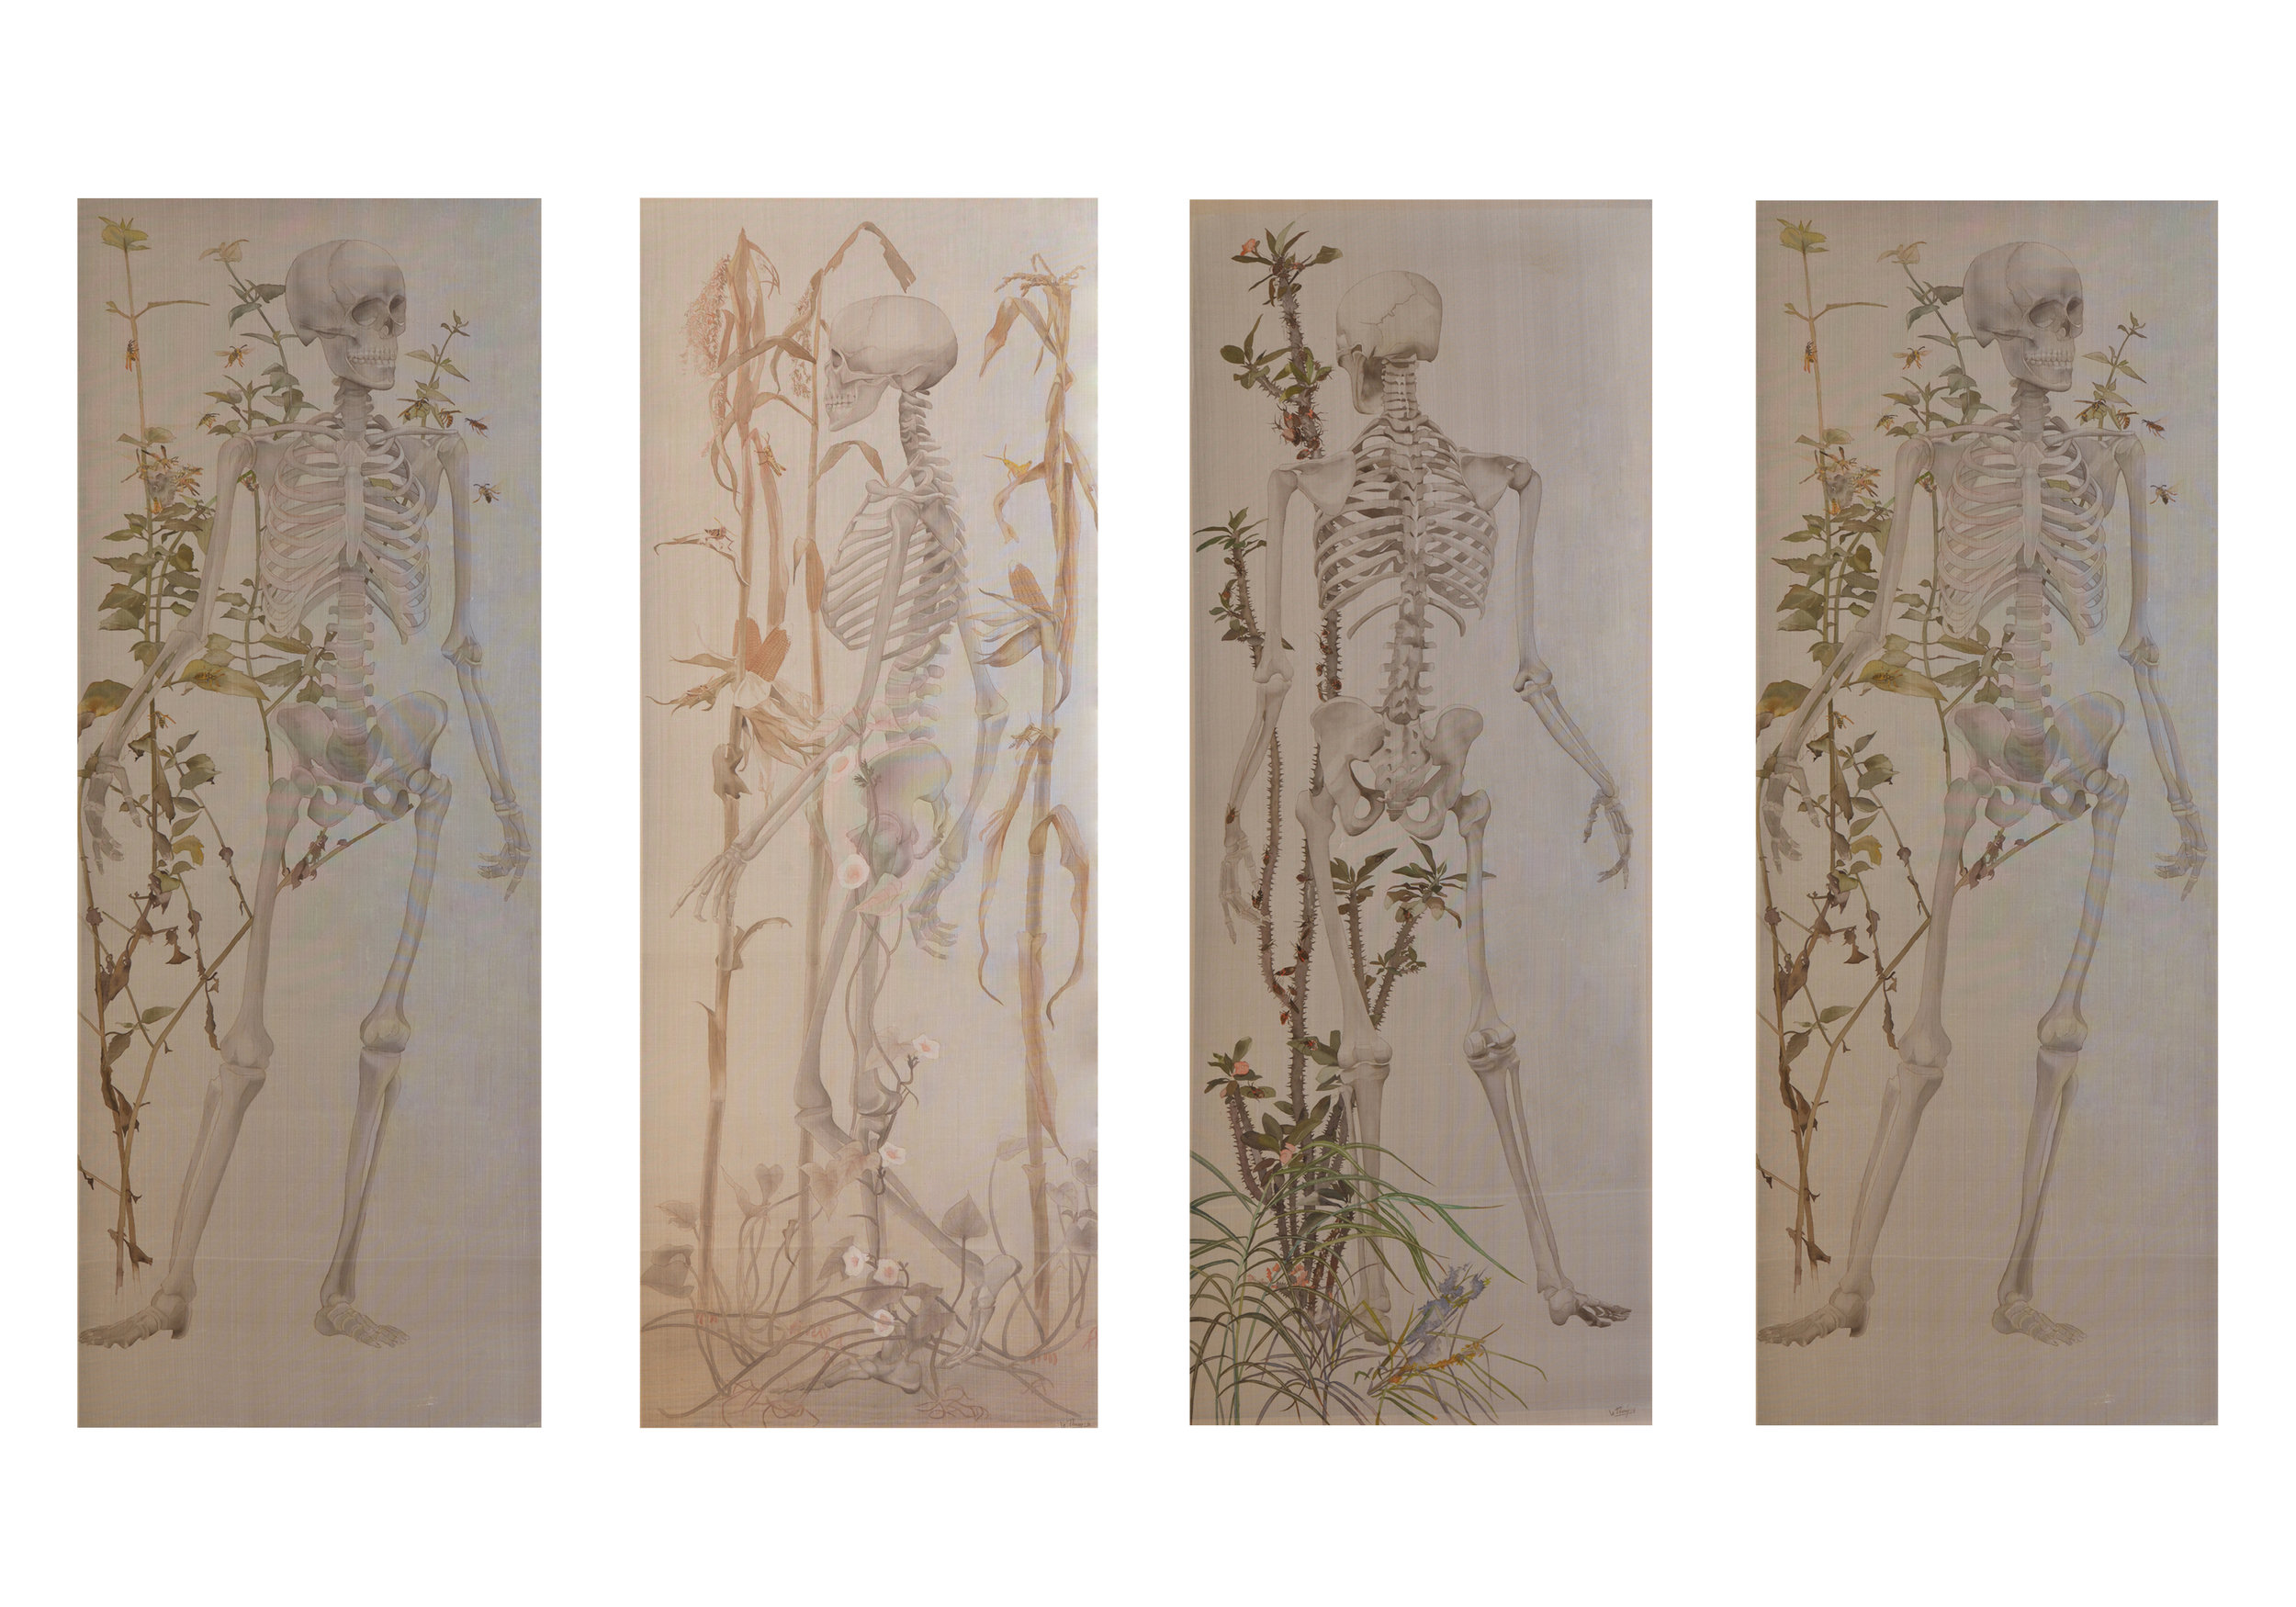 Le Thuy, Walking in the Garden I-IV, watercolour on silk, 170 x 62 cm (each), 2016